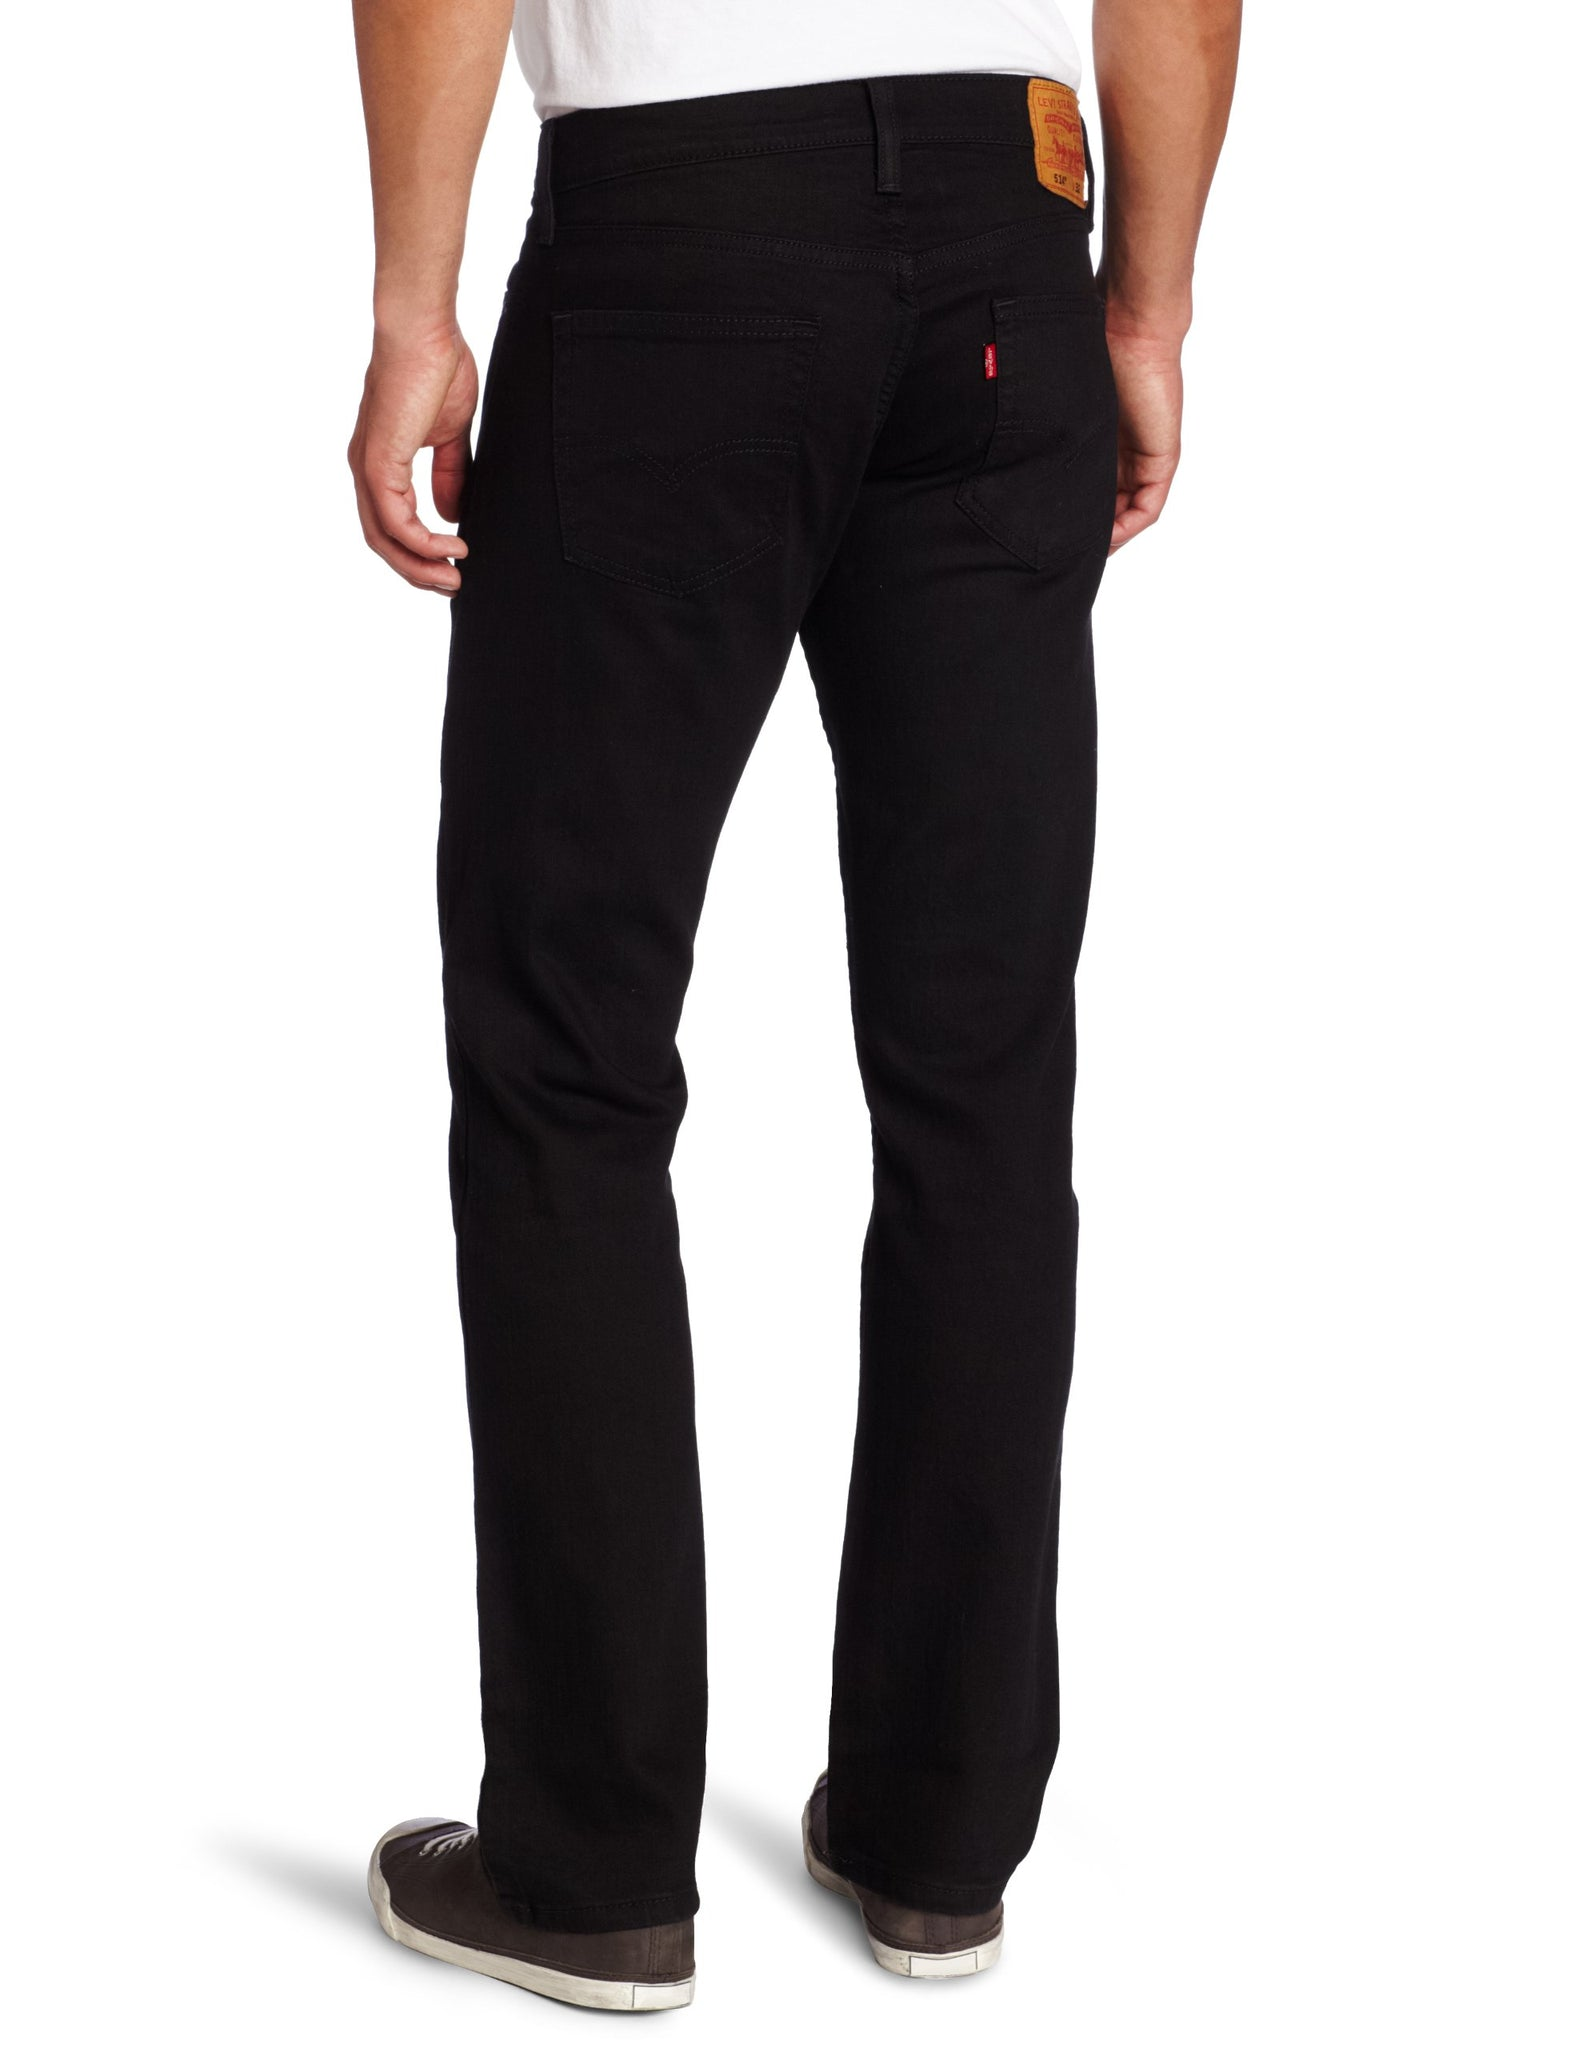 Levi's Men's 514 Straight fit Stretch Jean,  Black, 34x29 - mroutfit